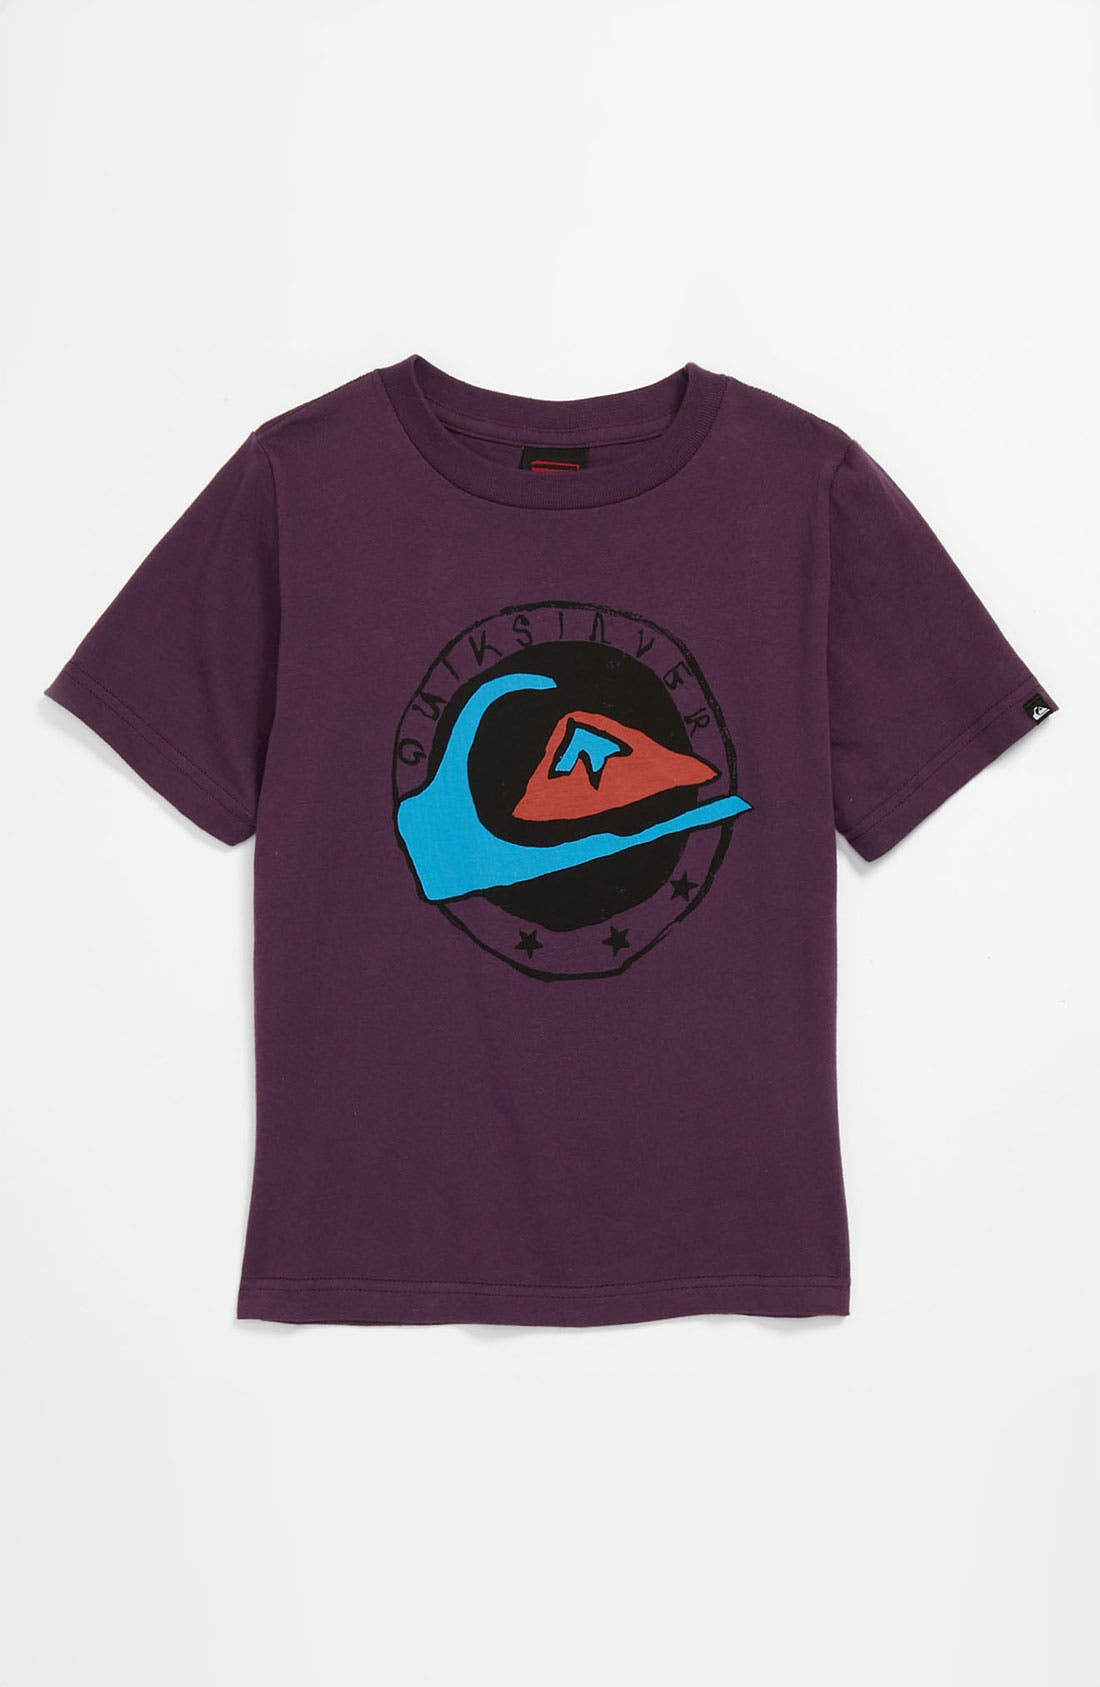 Alternate Image 1 Selected - Quiksilver 'Hold On' T-Shirt (Little Boys)